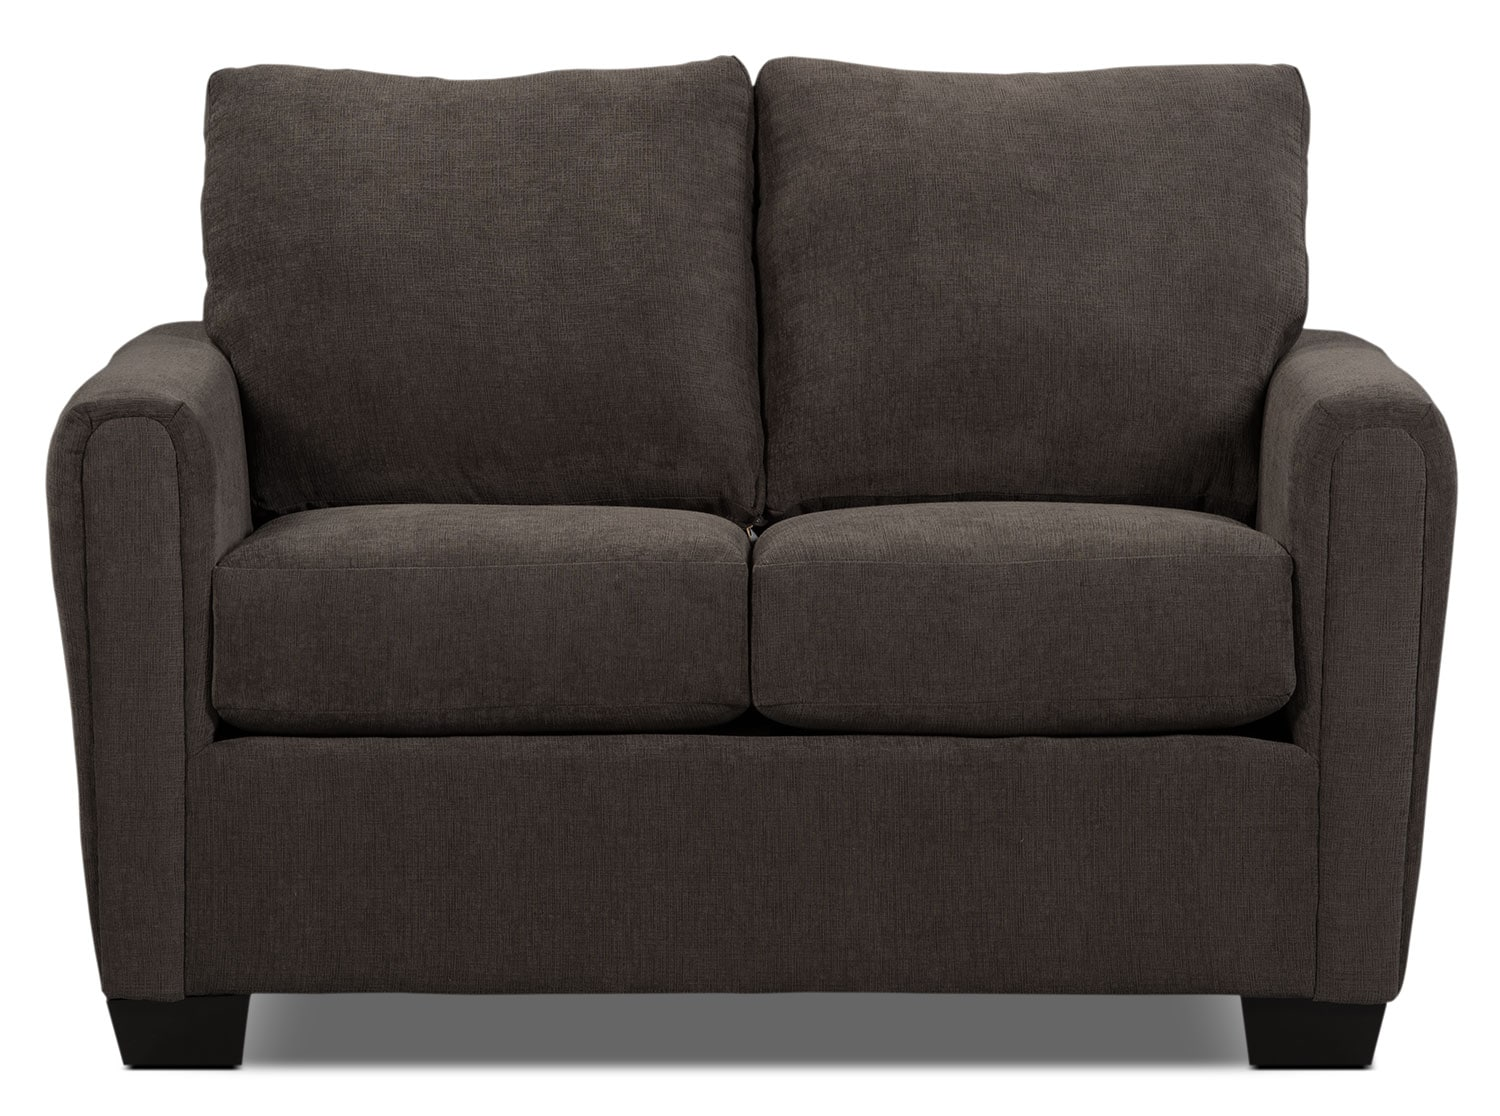 Spa Collection Chenille Condo Sofa Charcoal The Brick